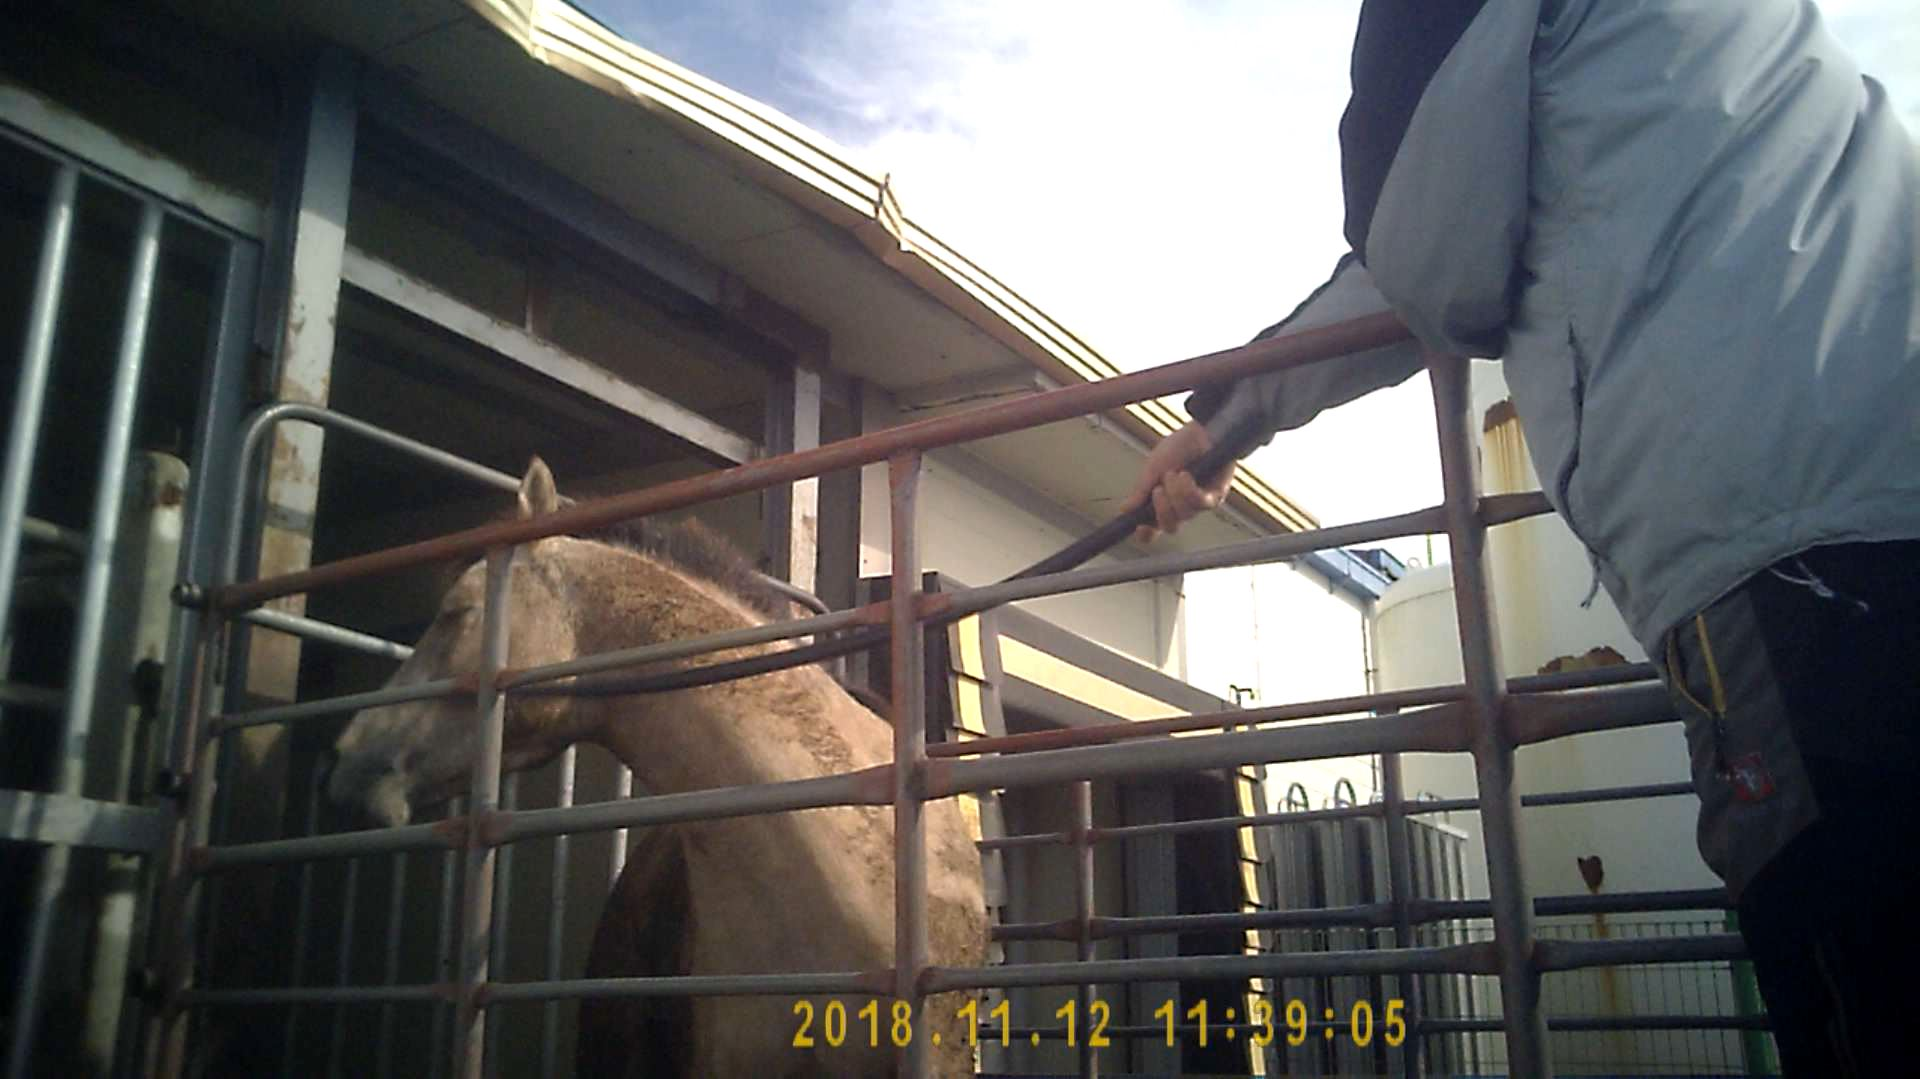 This 3-year-old filly was repeatedly struck in the face during unloading.